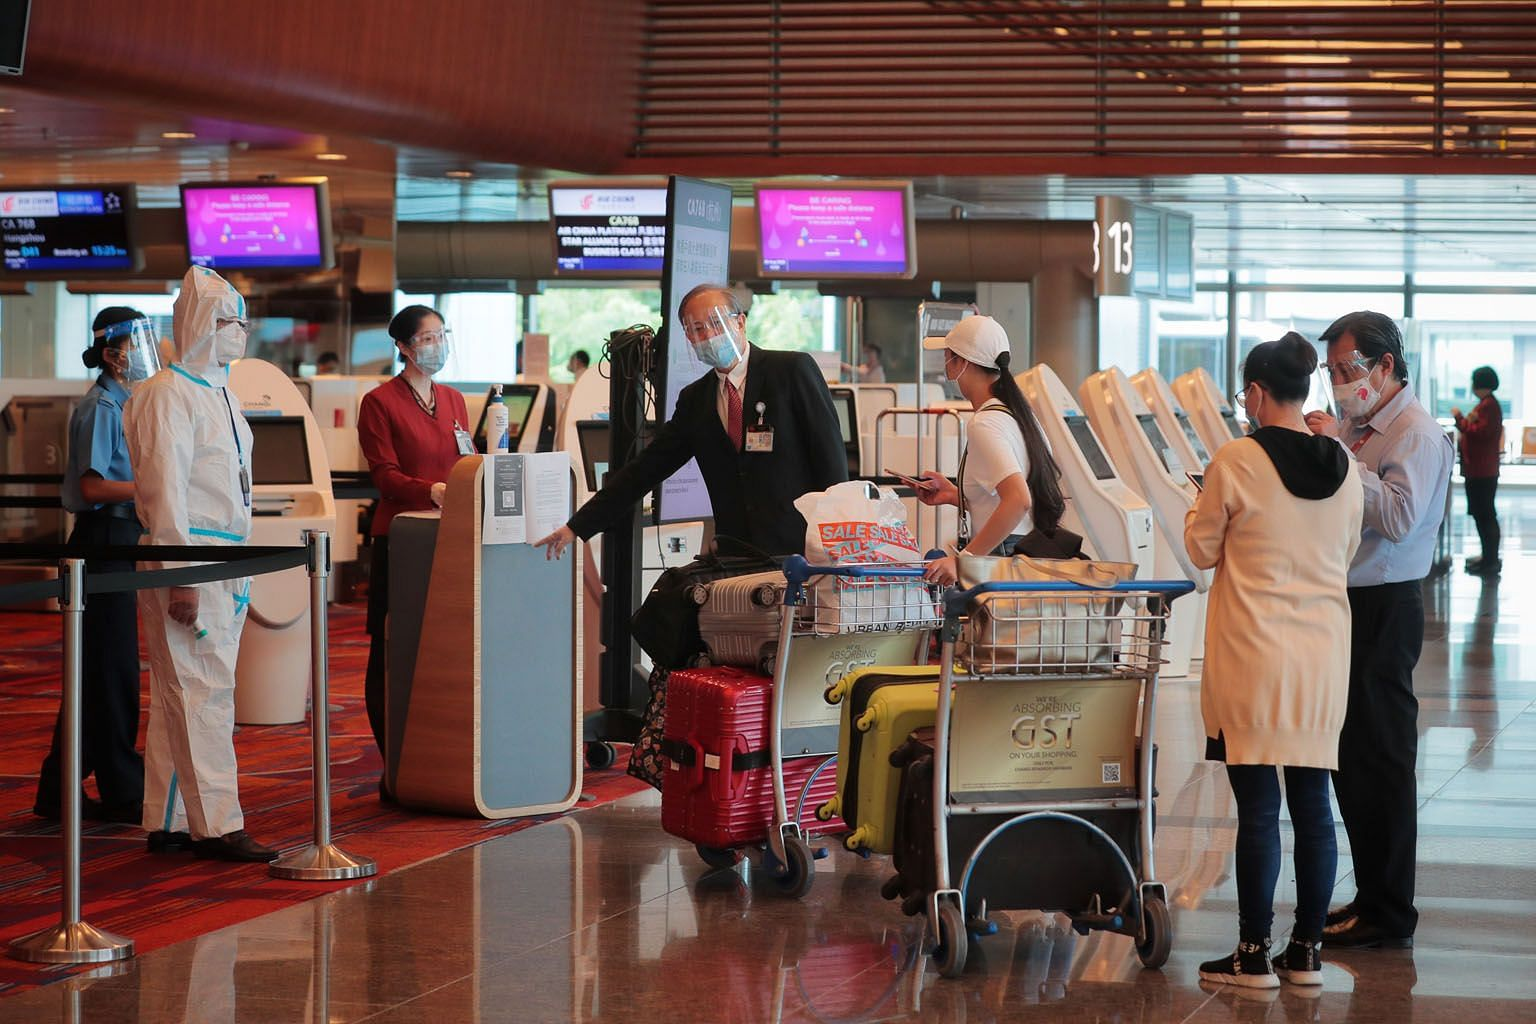 Ms Tang Yun (in cap) and Ms Zhang Yan (right) checking in at Changi Airport yesterday. They were among the first batch of China-bound passengers leaving Changi Airport yesterday after stricter rules were imposed.